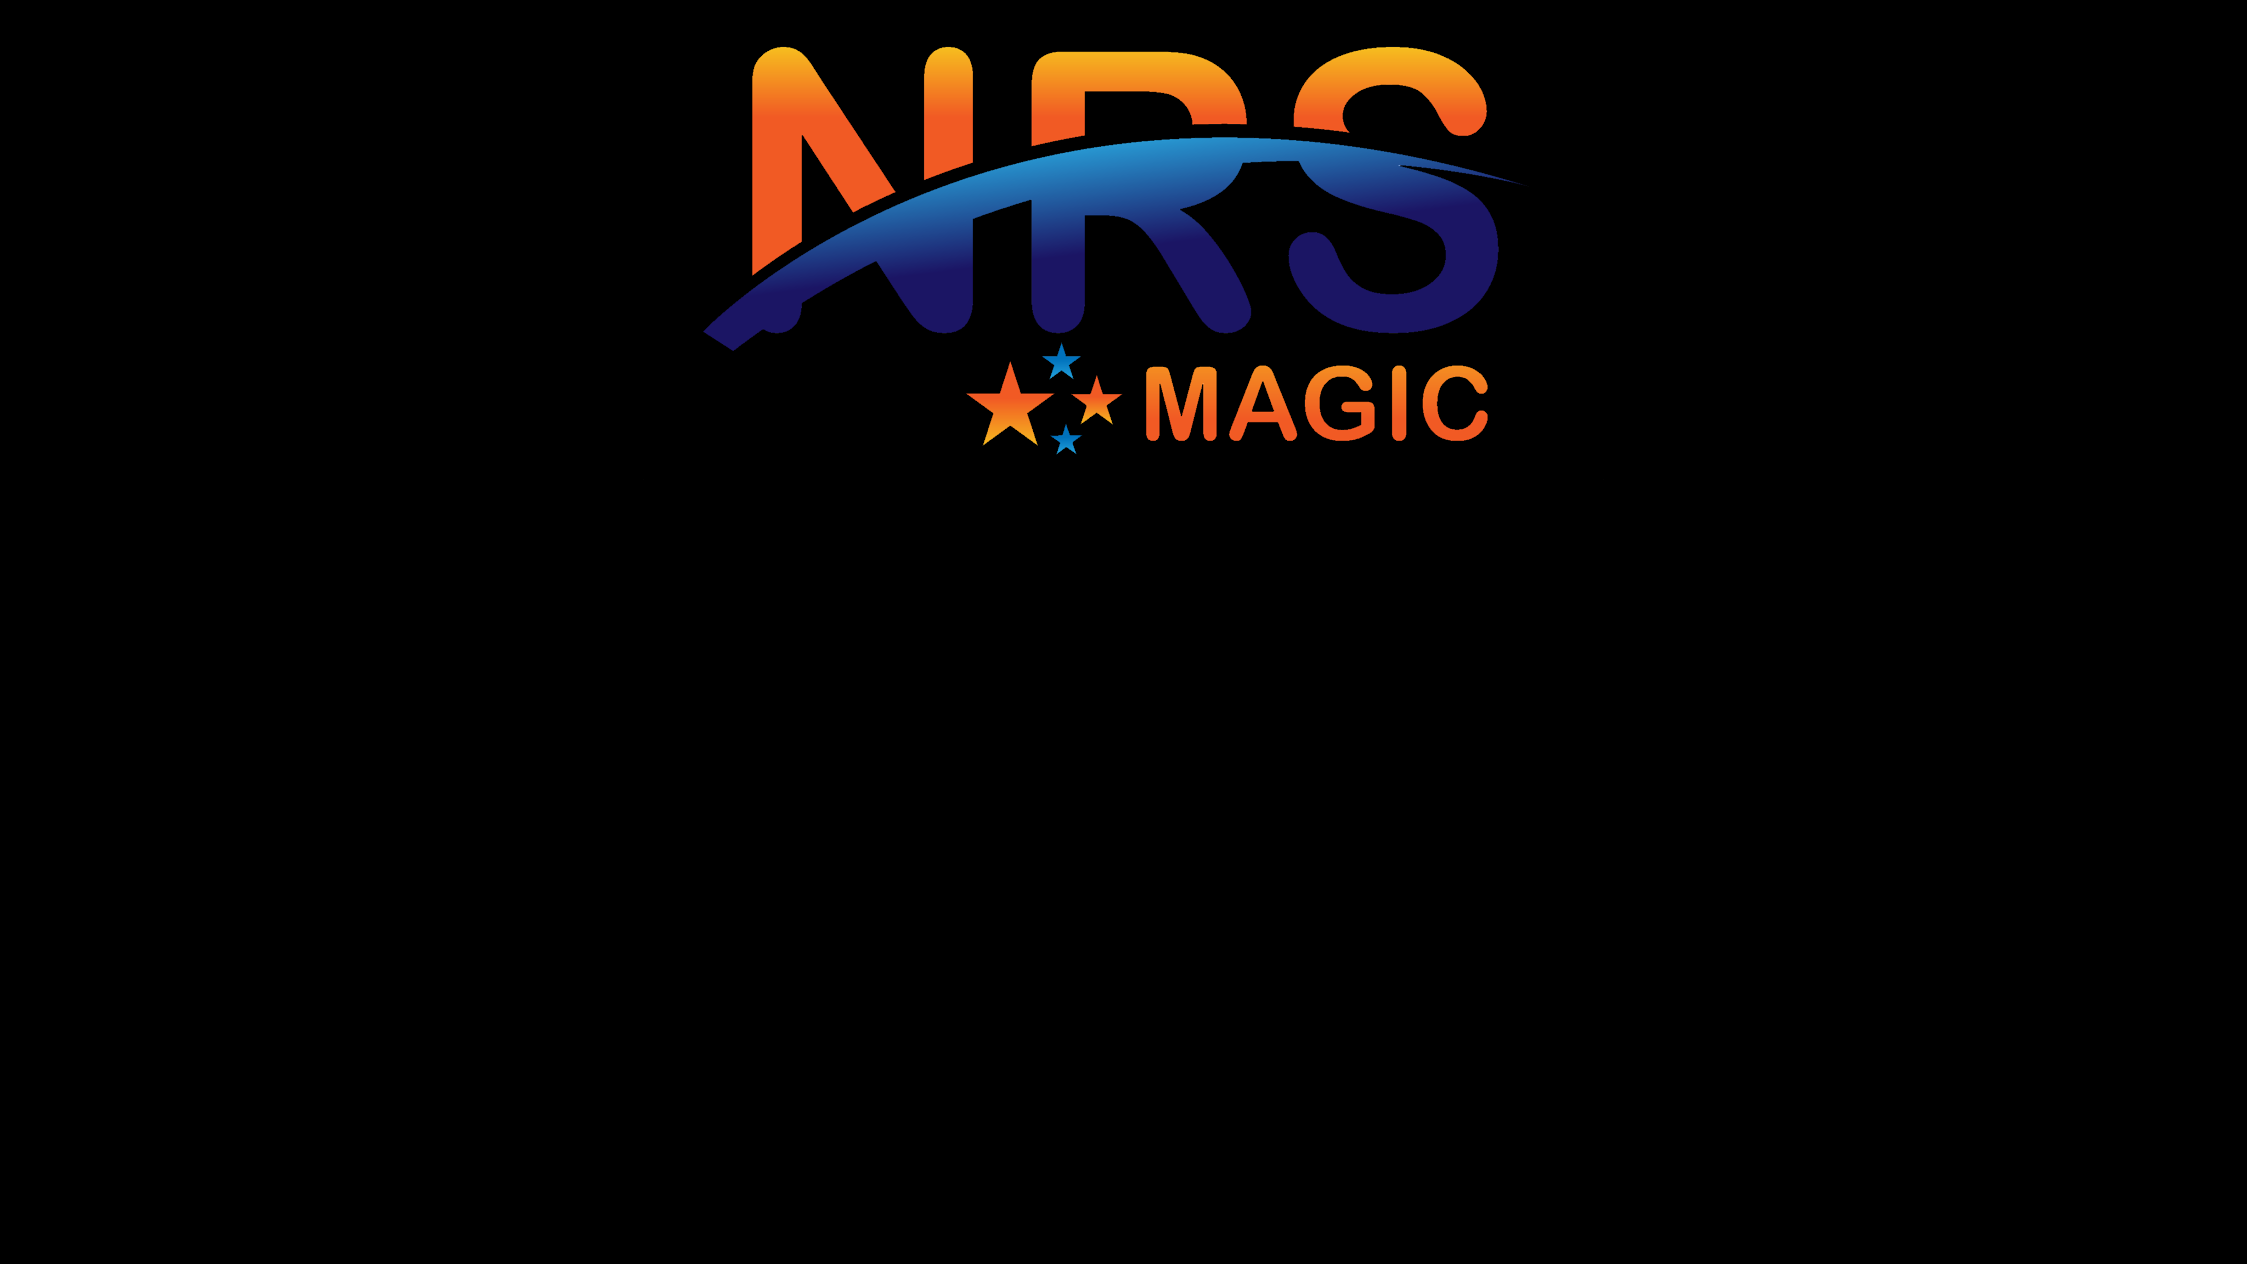 NRS Magic LTD